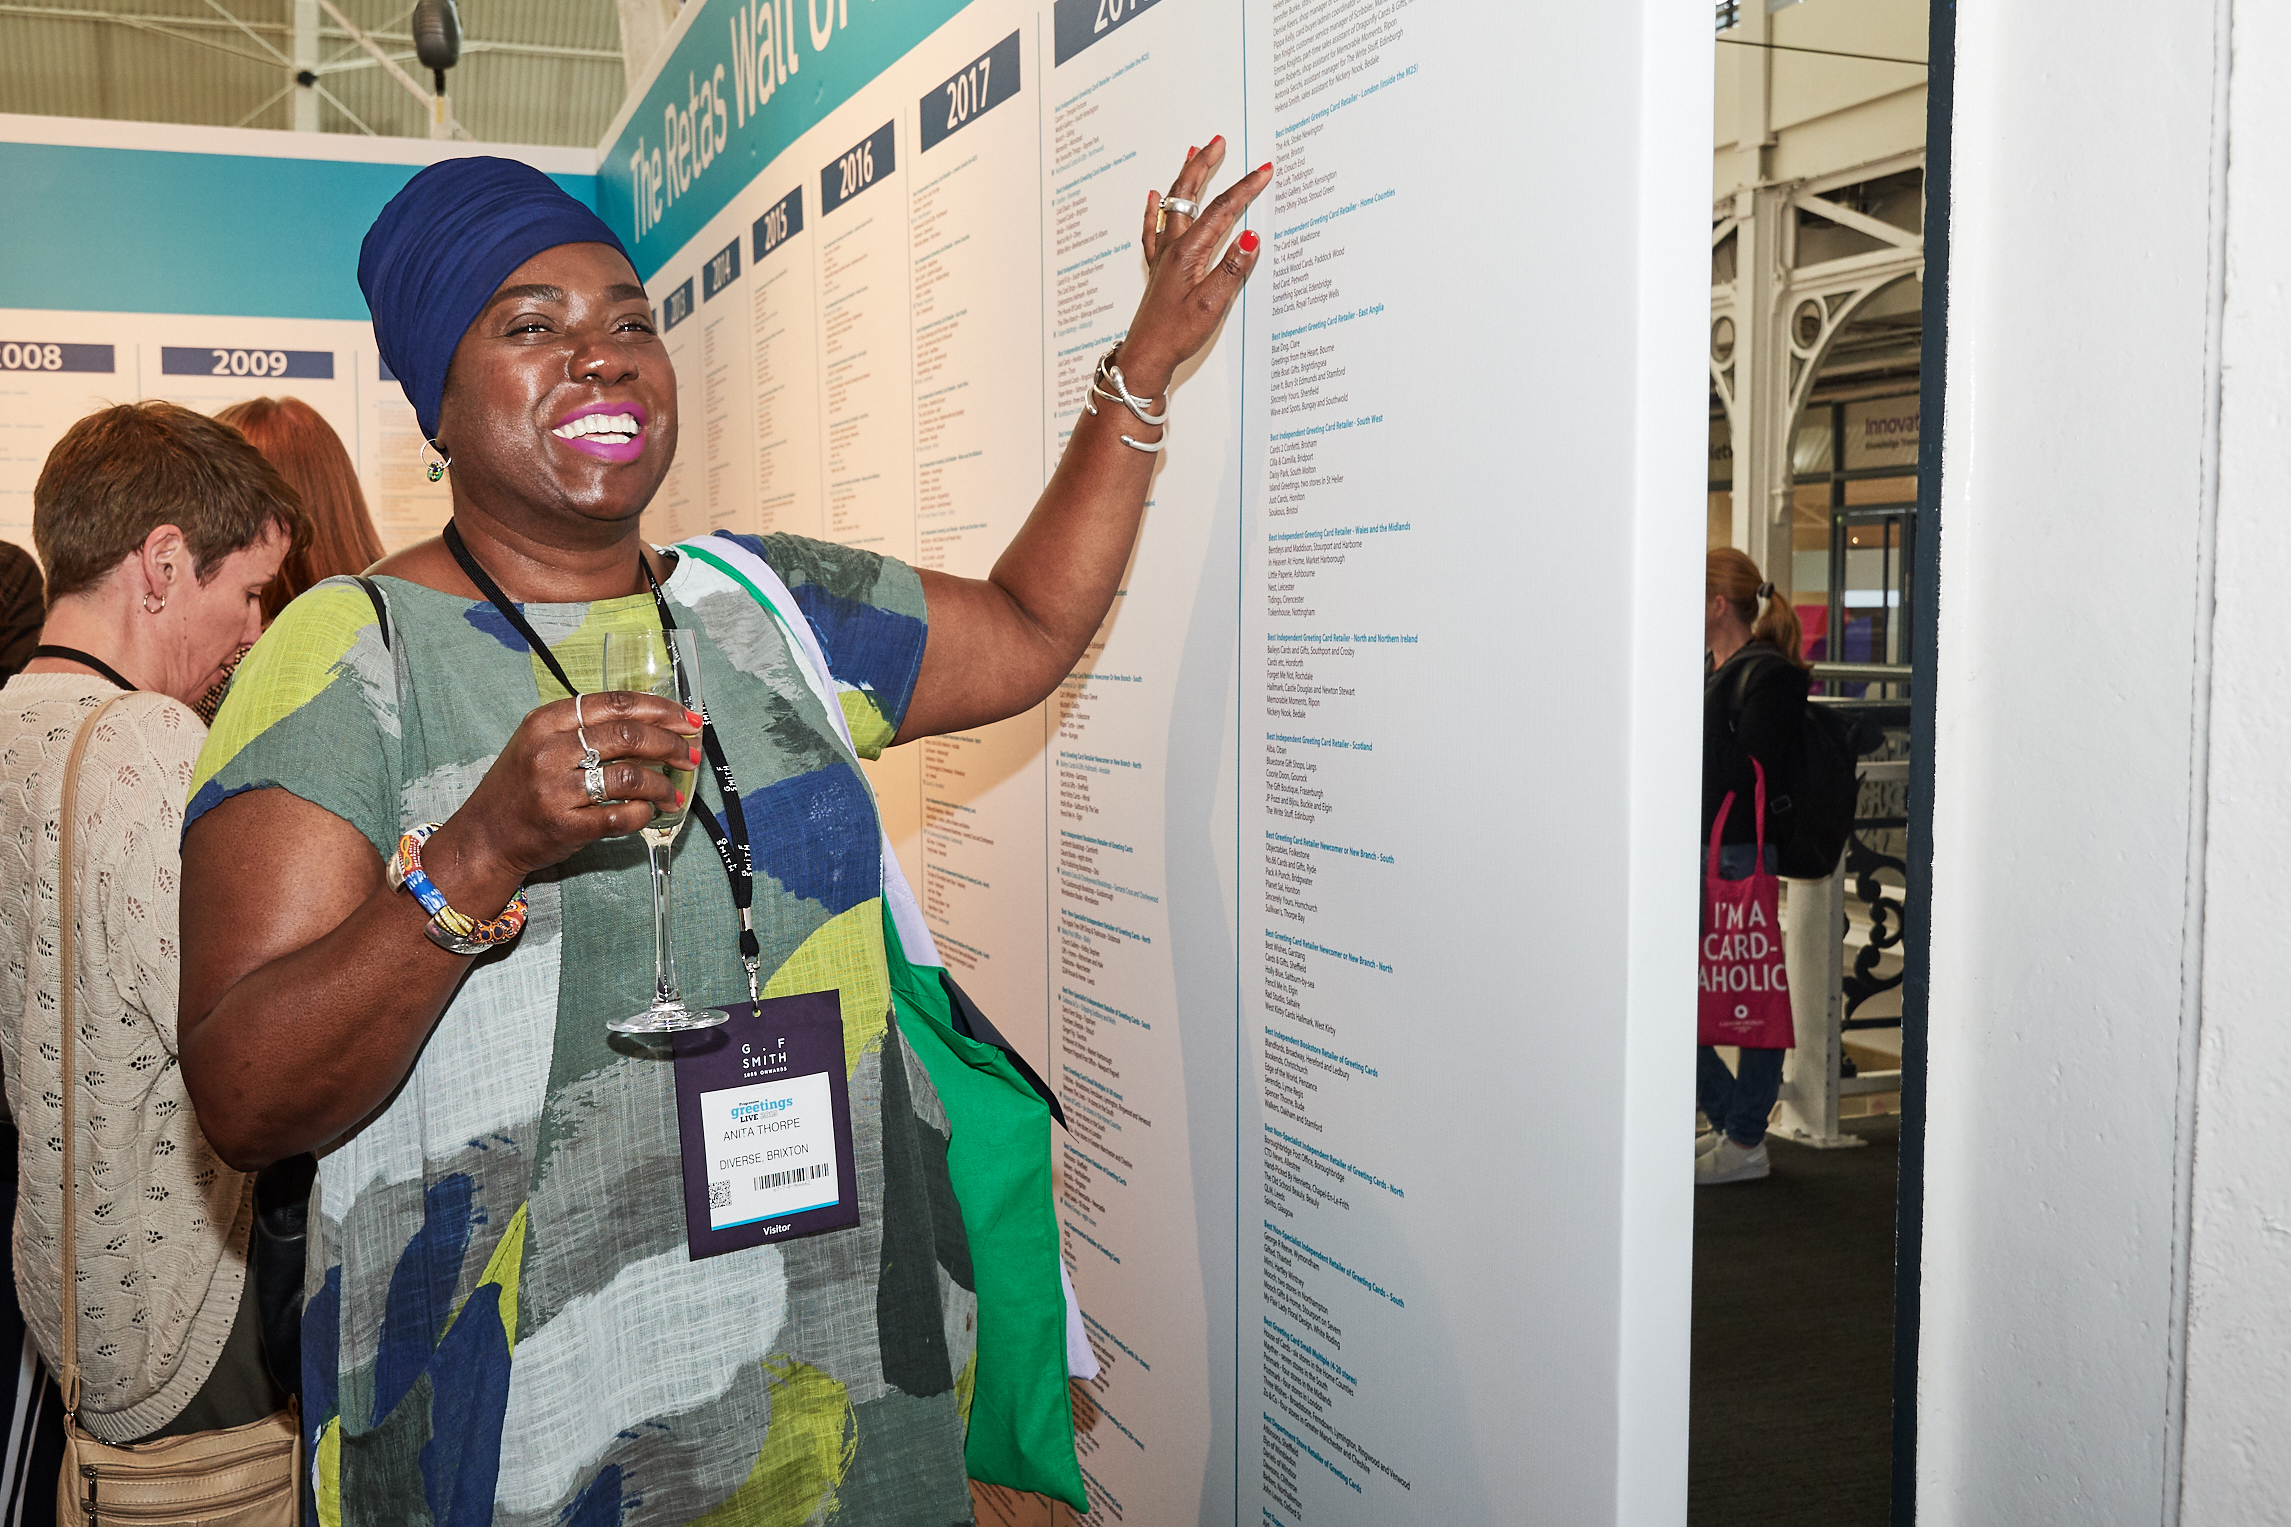 Above: Anita Thorpe, owner of Diverse delighted to see her shop's name on the Wall of Fame at the show.